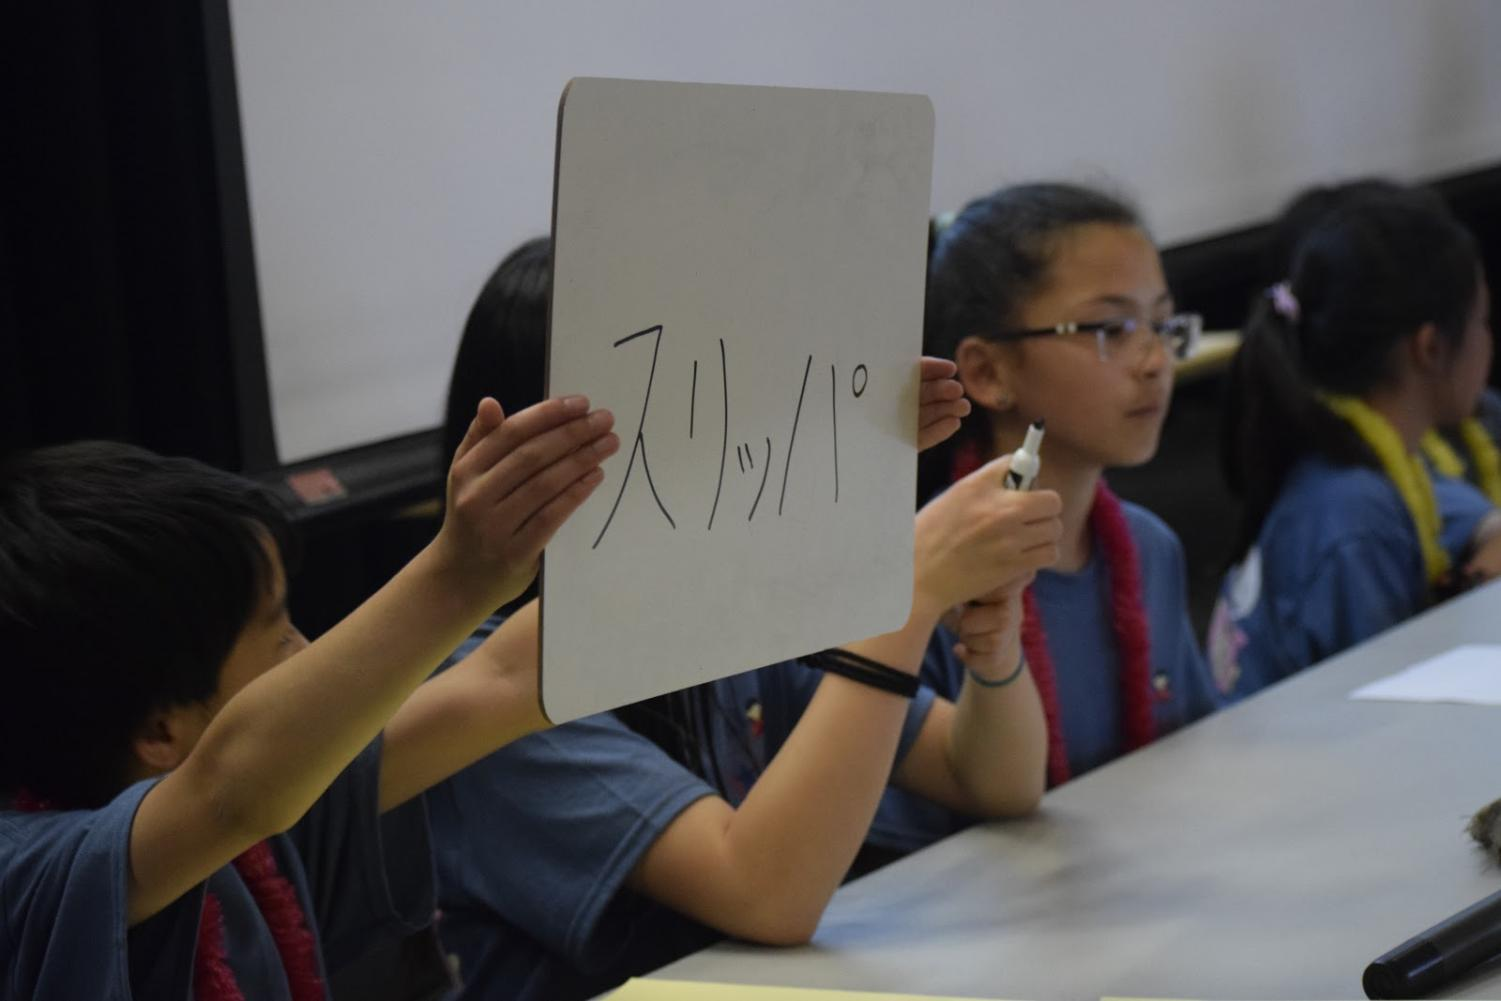 A student competing in the K-4 division's championship round holds up their answer for a toss-up question.